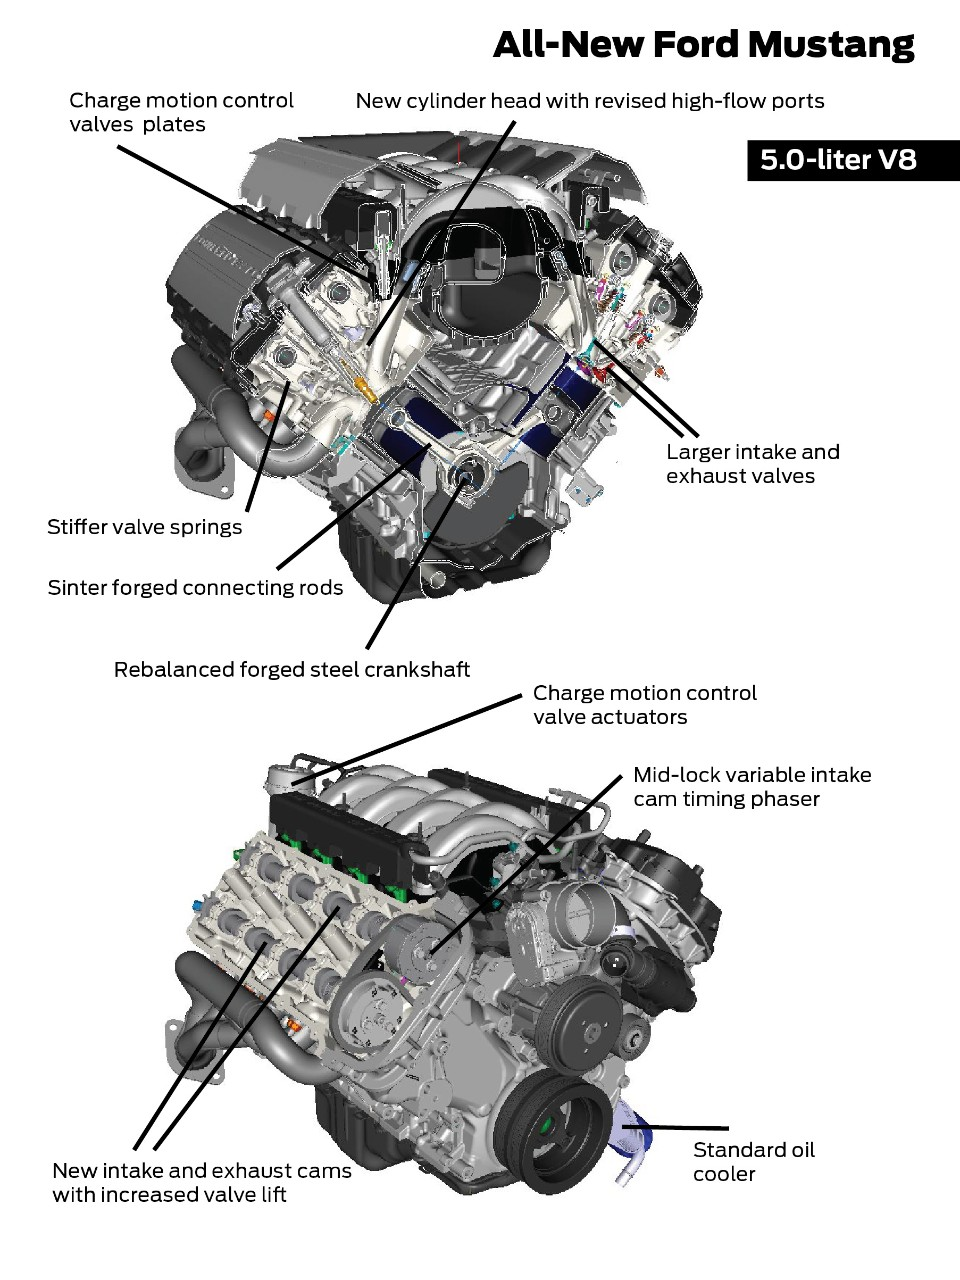 2015 Mustang Engine Specs: 5.0L V8 Coyote - 2015 Mustang Engine Specs: 5.0L V8 Coyote